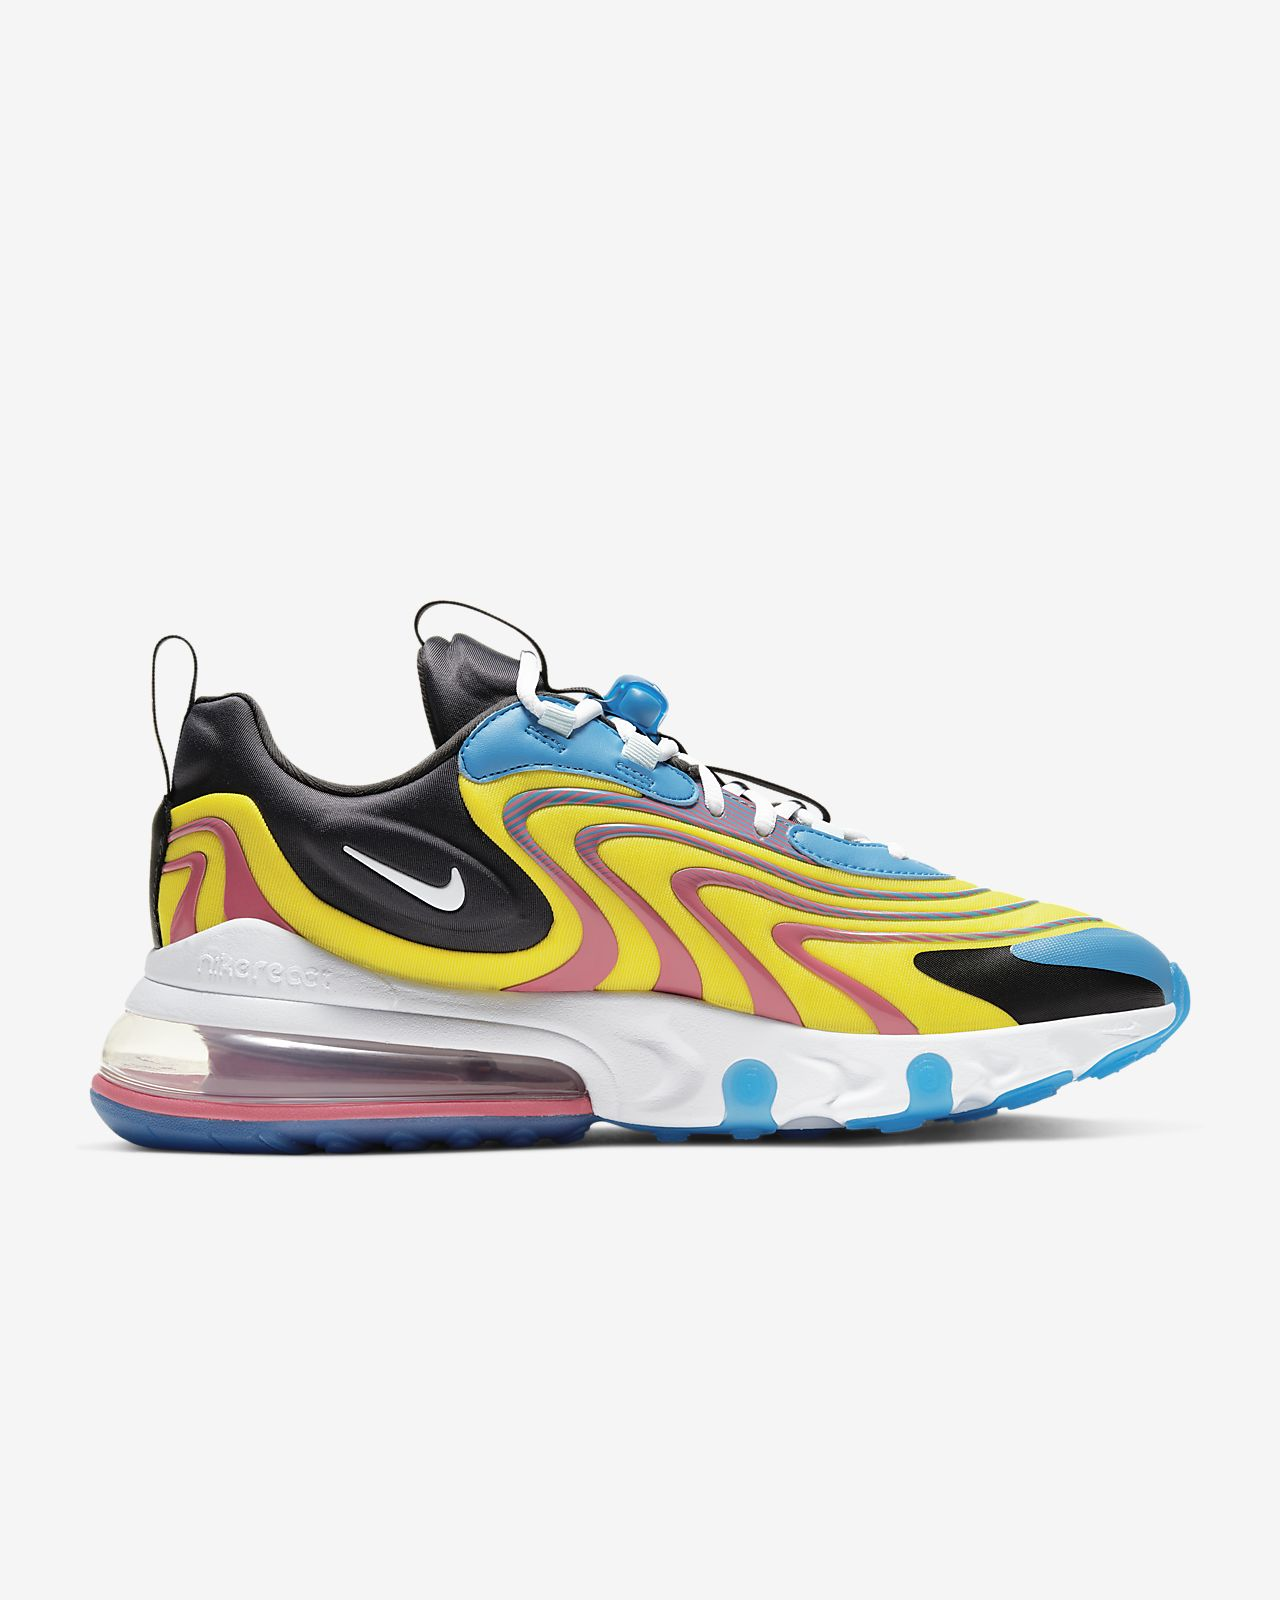 air max 270 react engineered